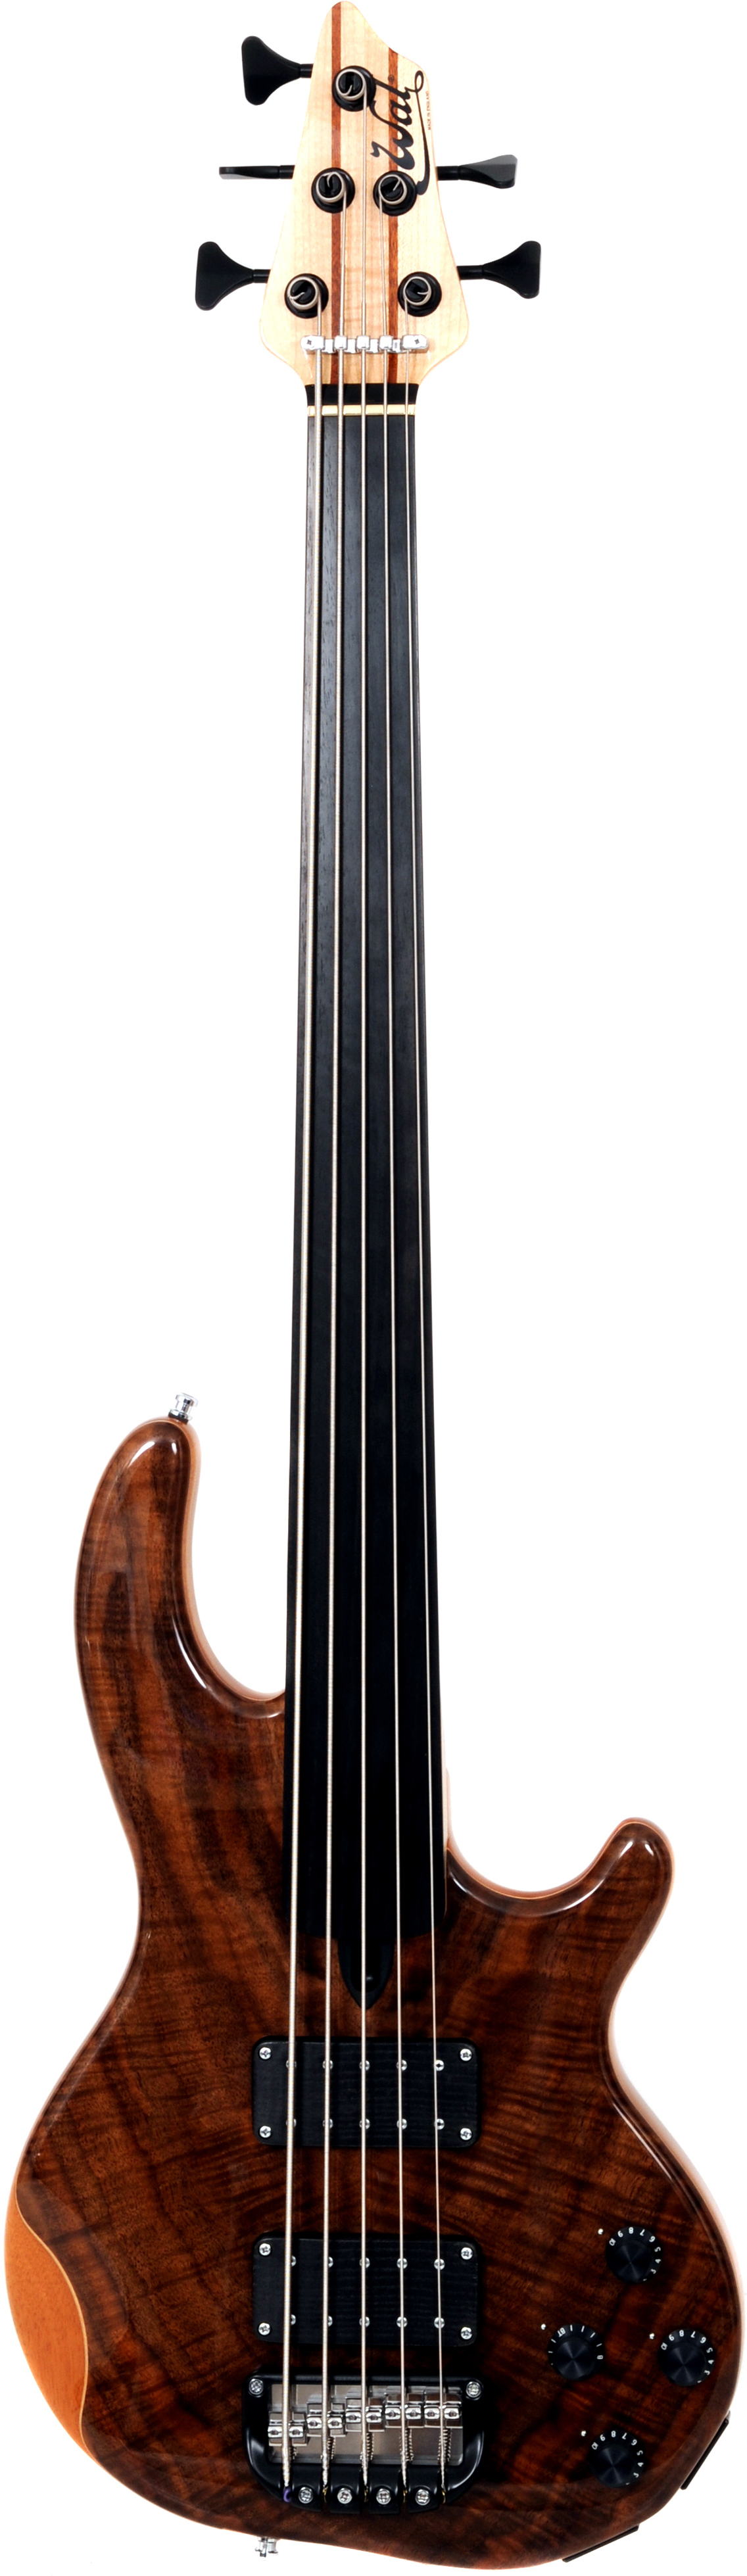 5-string Mk3 with claro walnut facings and a plain fretless ebony fingerboard.